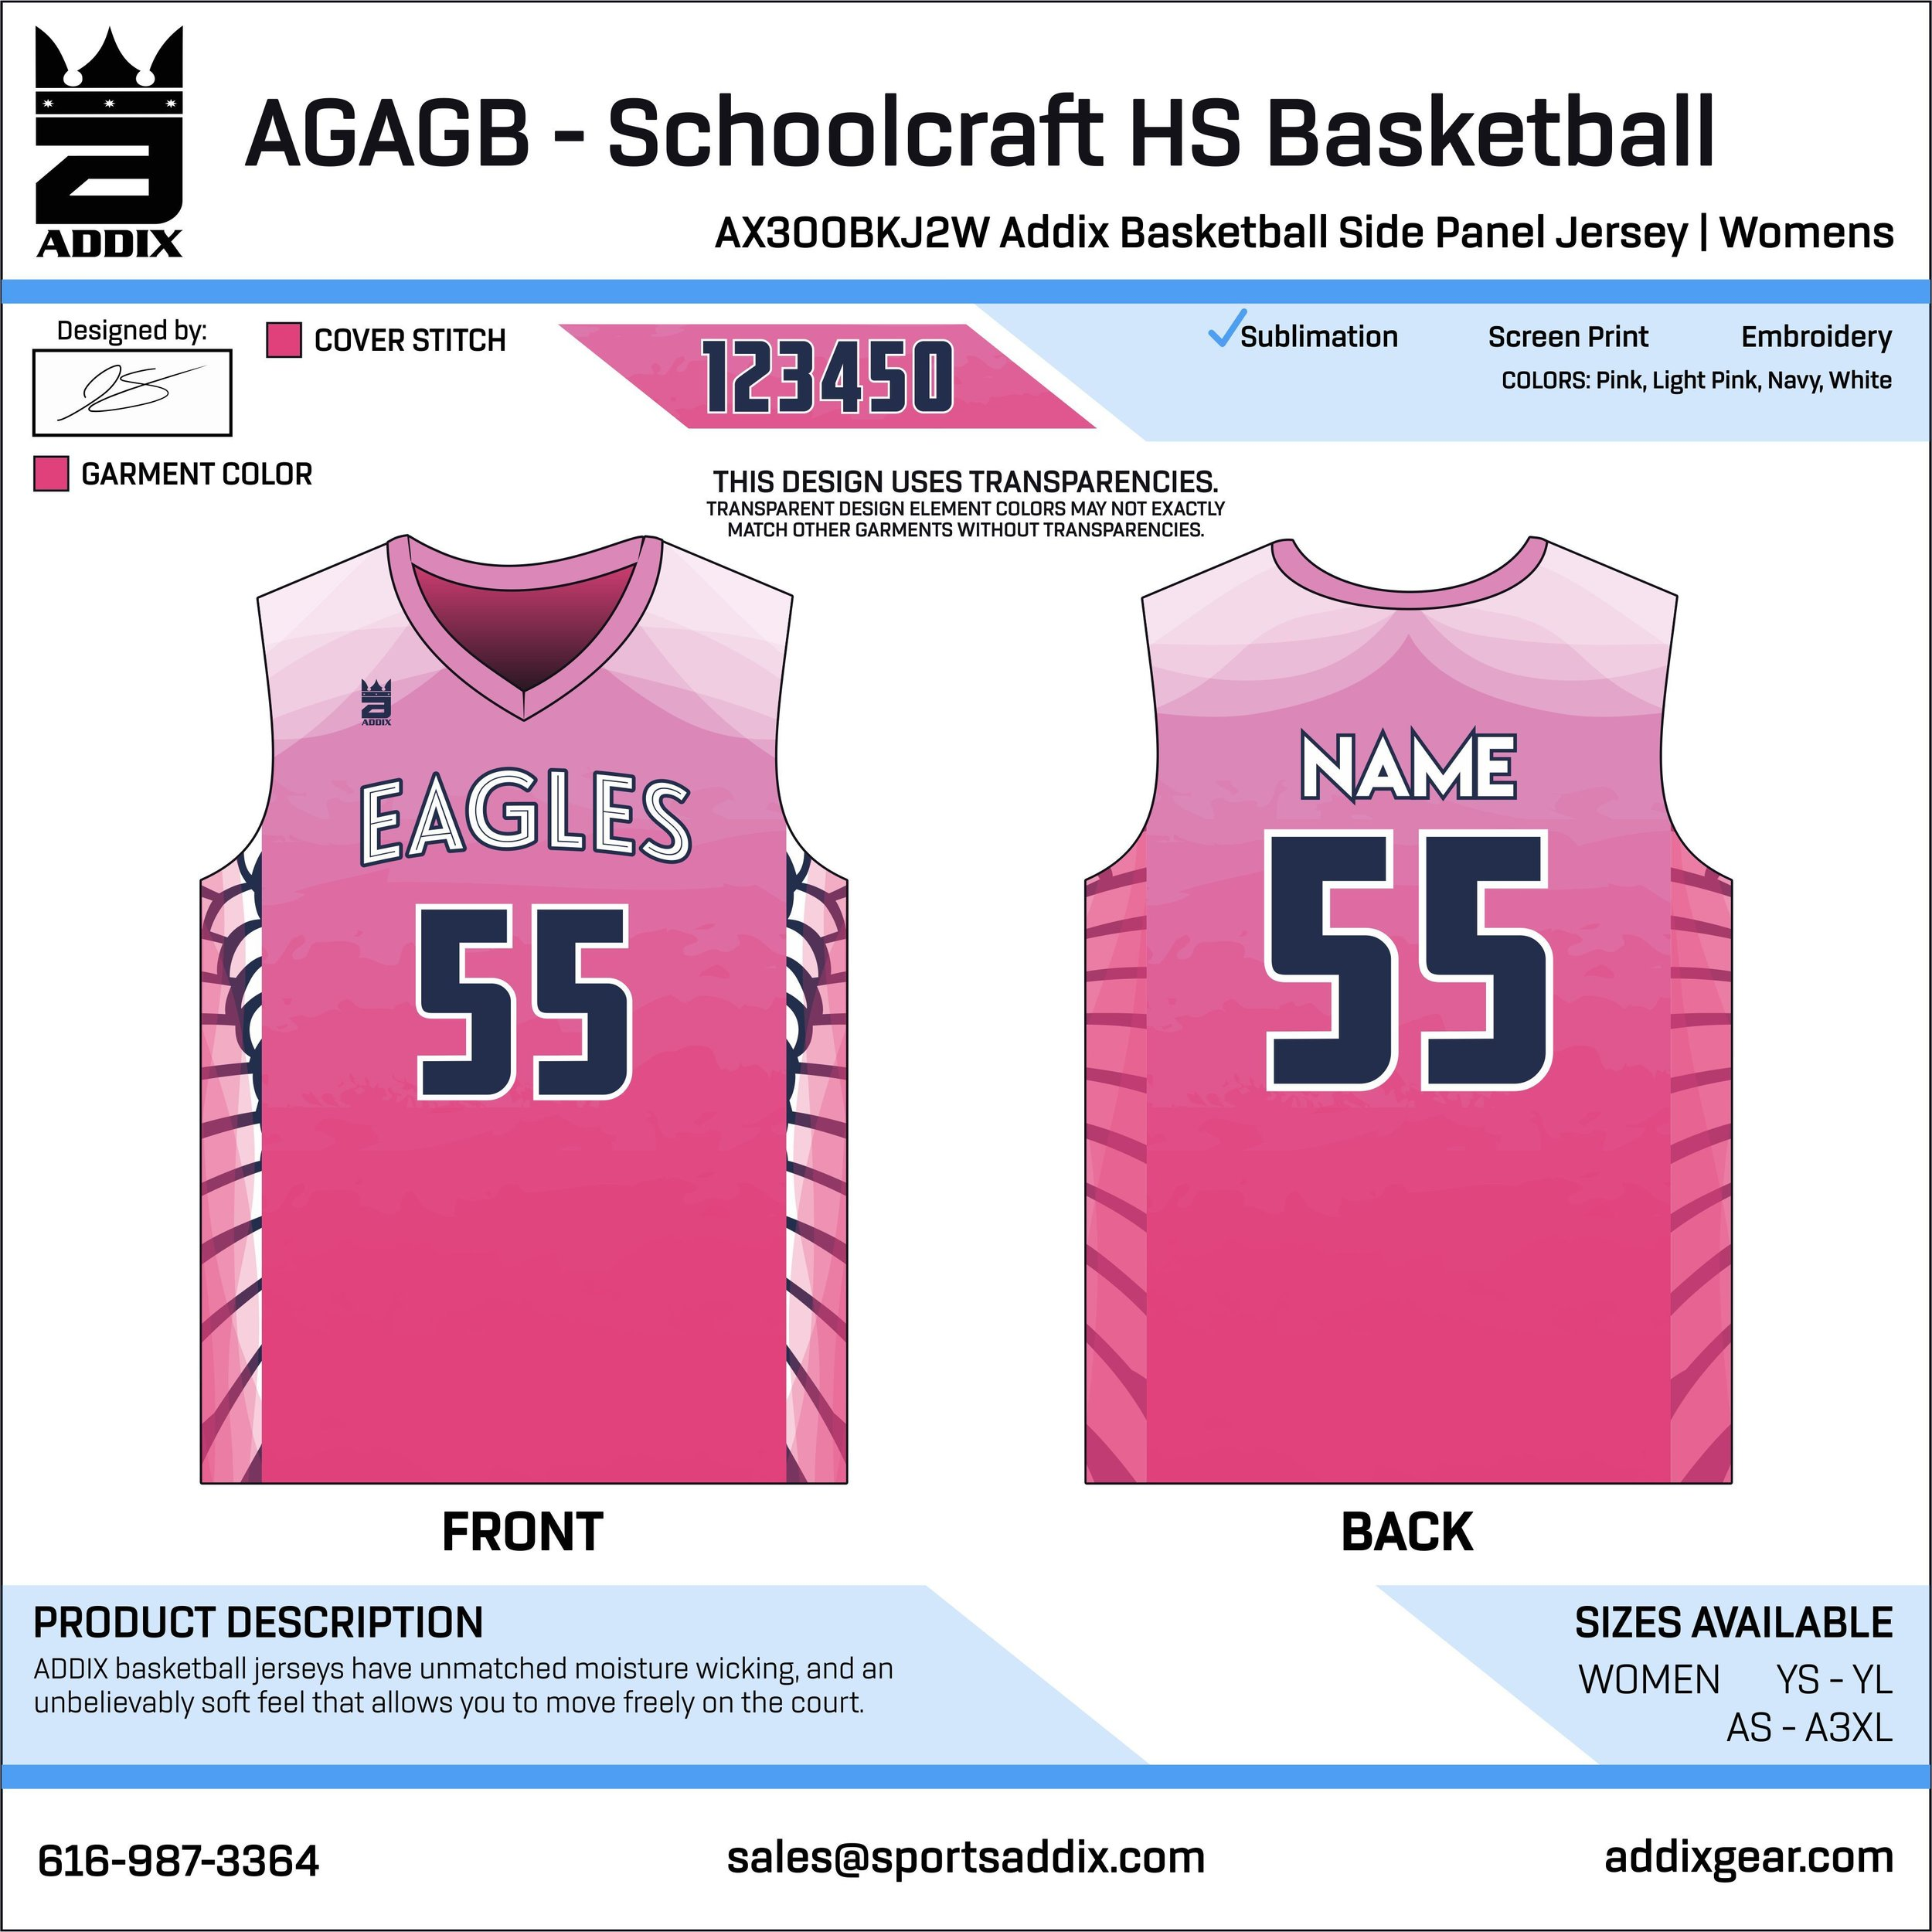 AGAGB - Schoolcraft HS Basketball_2018_7-20_JE_Basketball Jersey.jpg